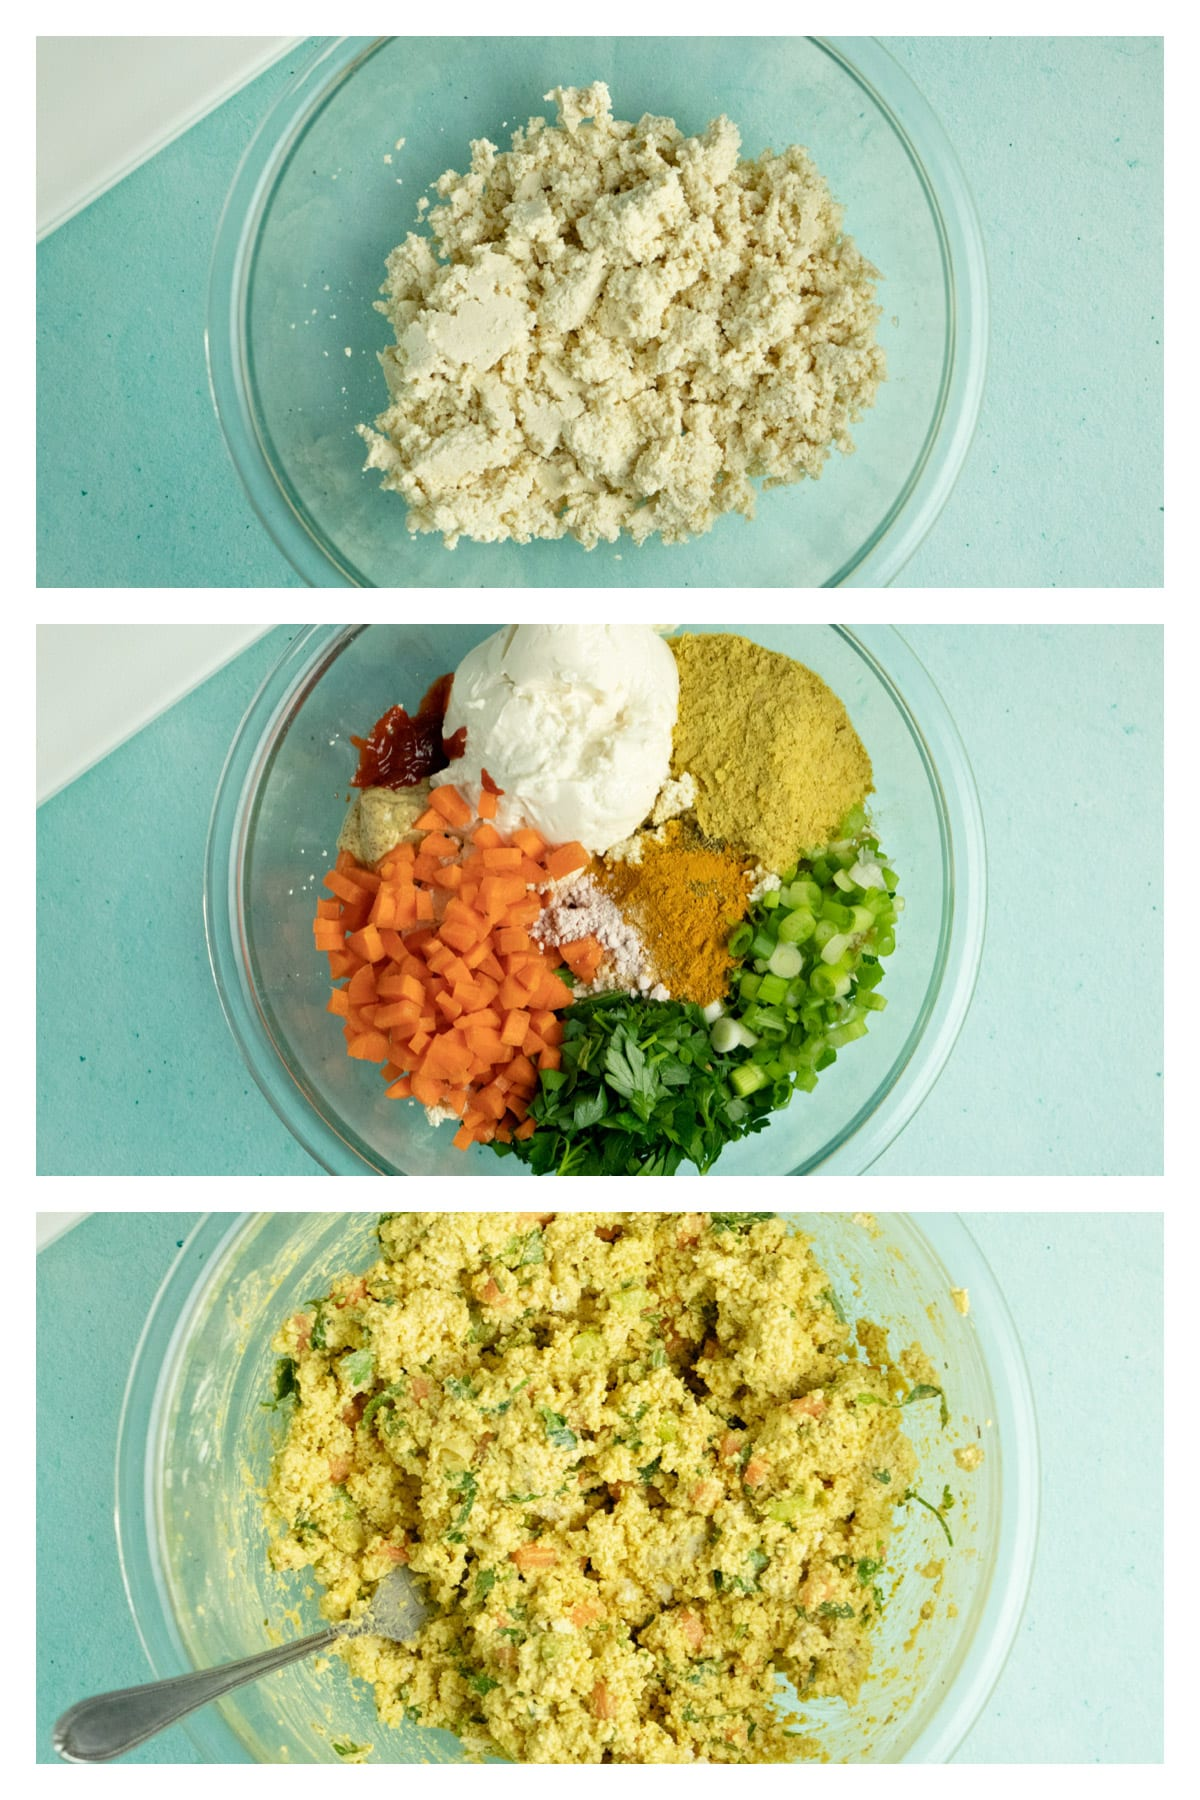 image collage showing crumbled tofu in a bowl, same bowl with other ingredients added, and the salad all mixed together